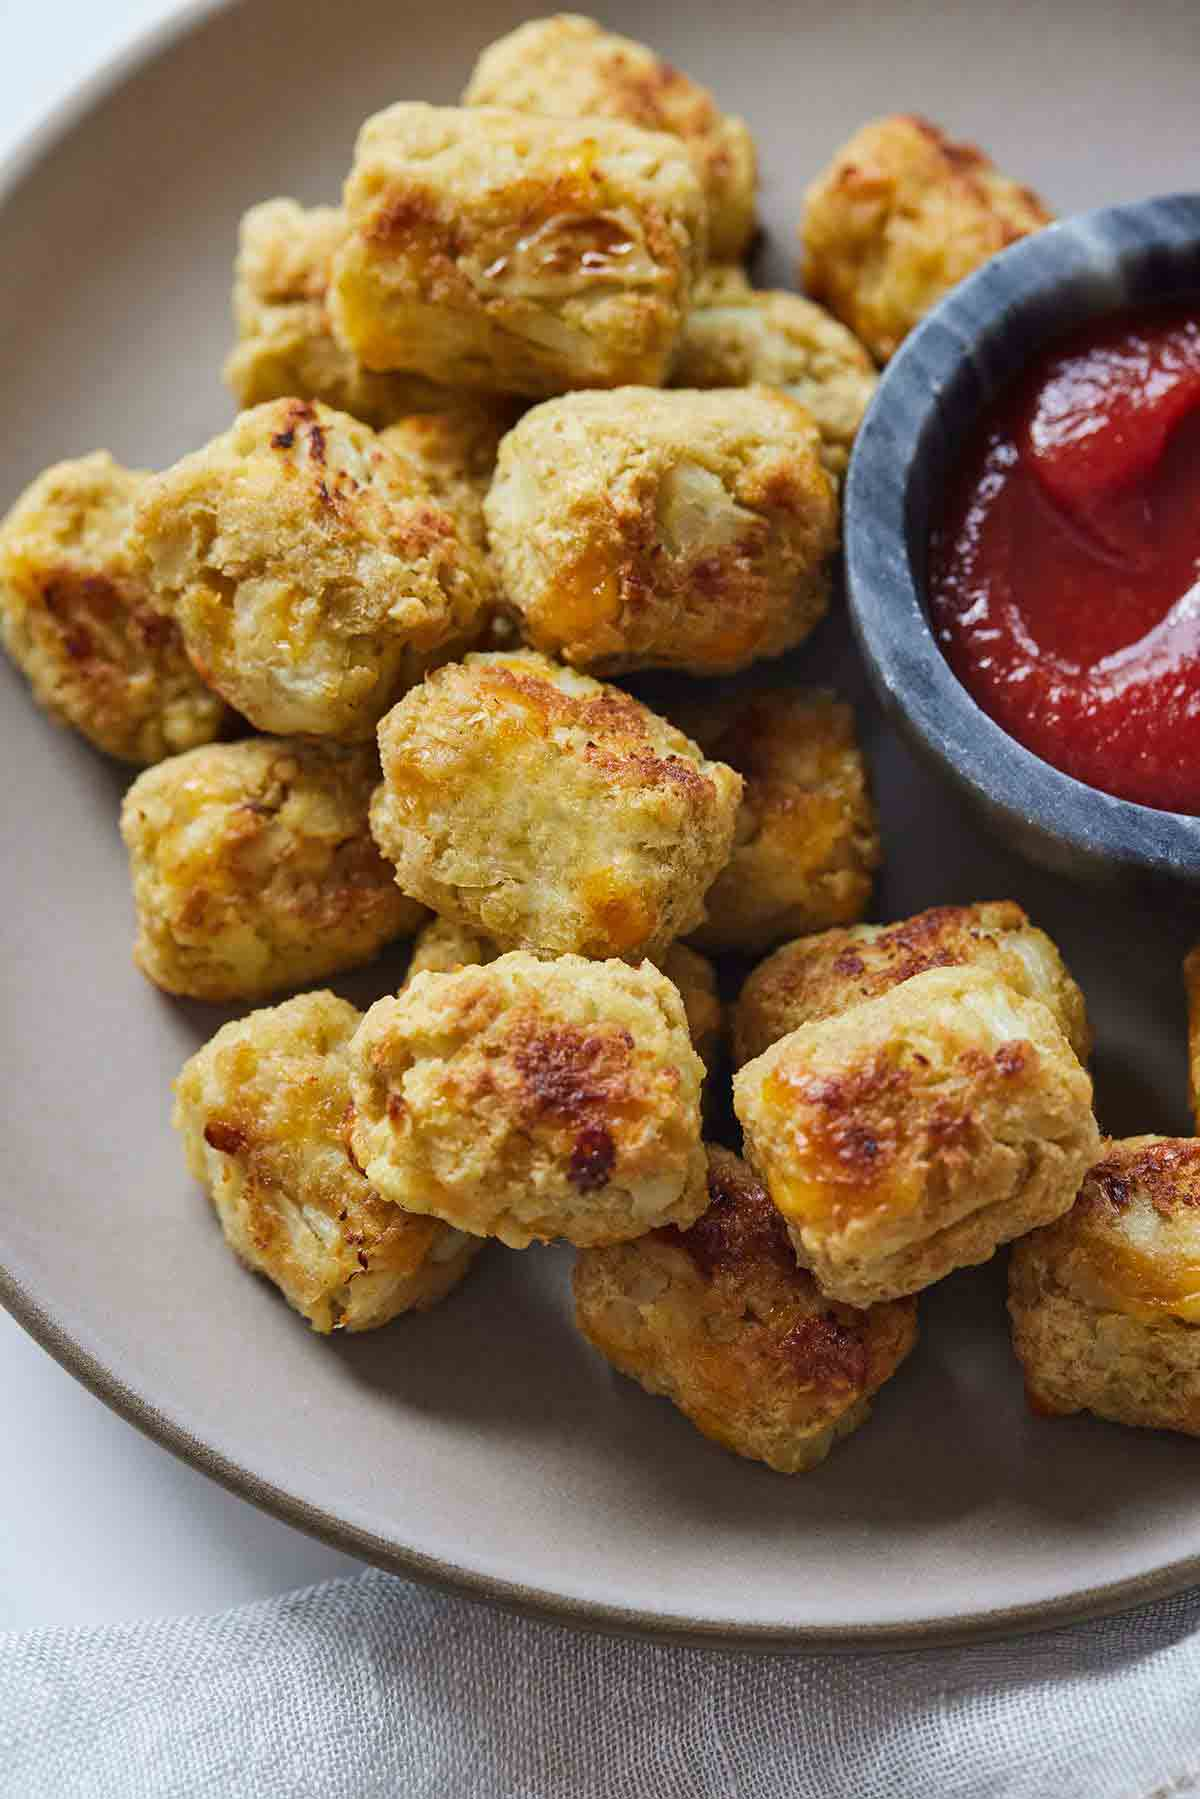 Overhead view of a plate of cauliflower tater tots with a side of ketchup.